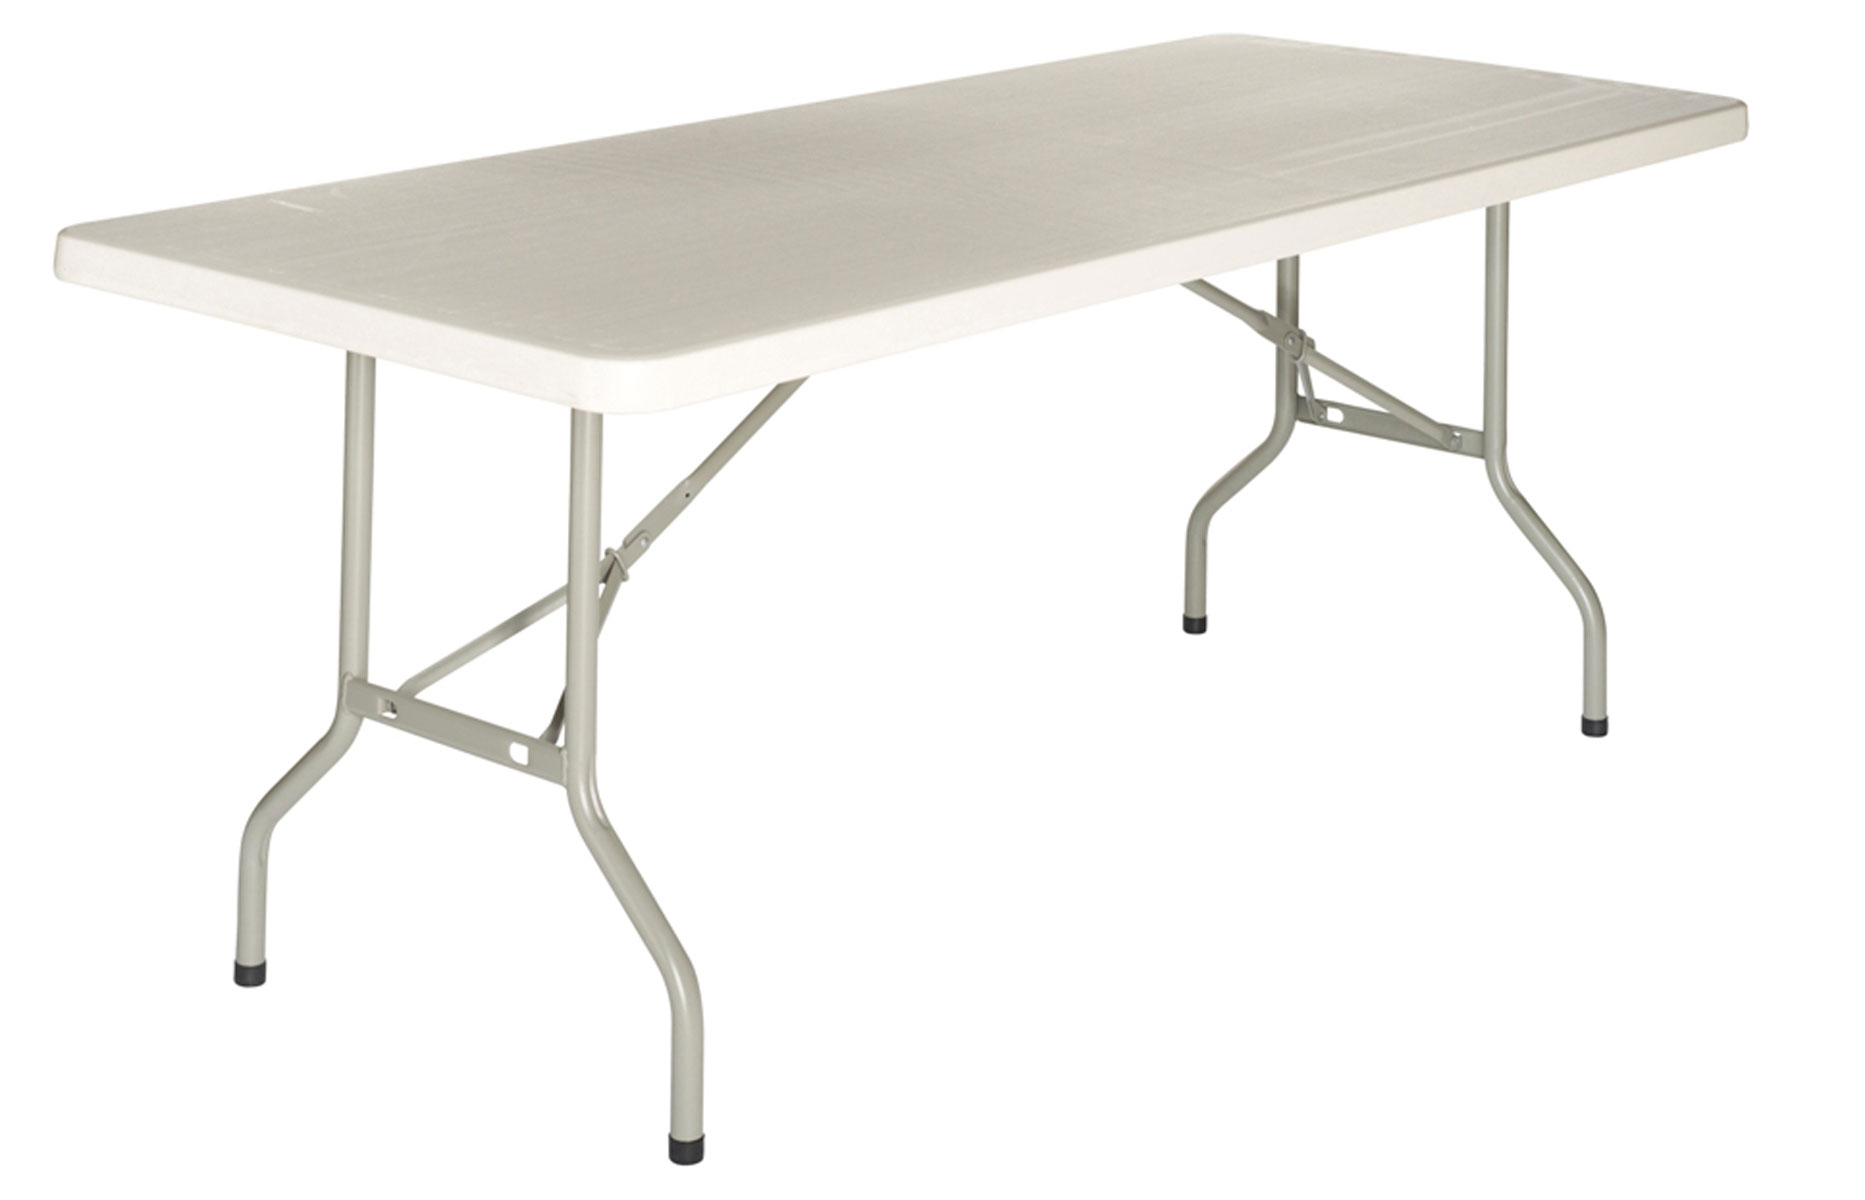 Table rabattable cuisine paris table pliante pas cher - Table balcon pas cher ...